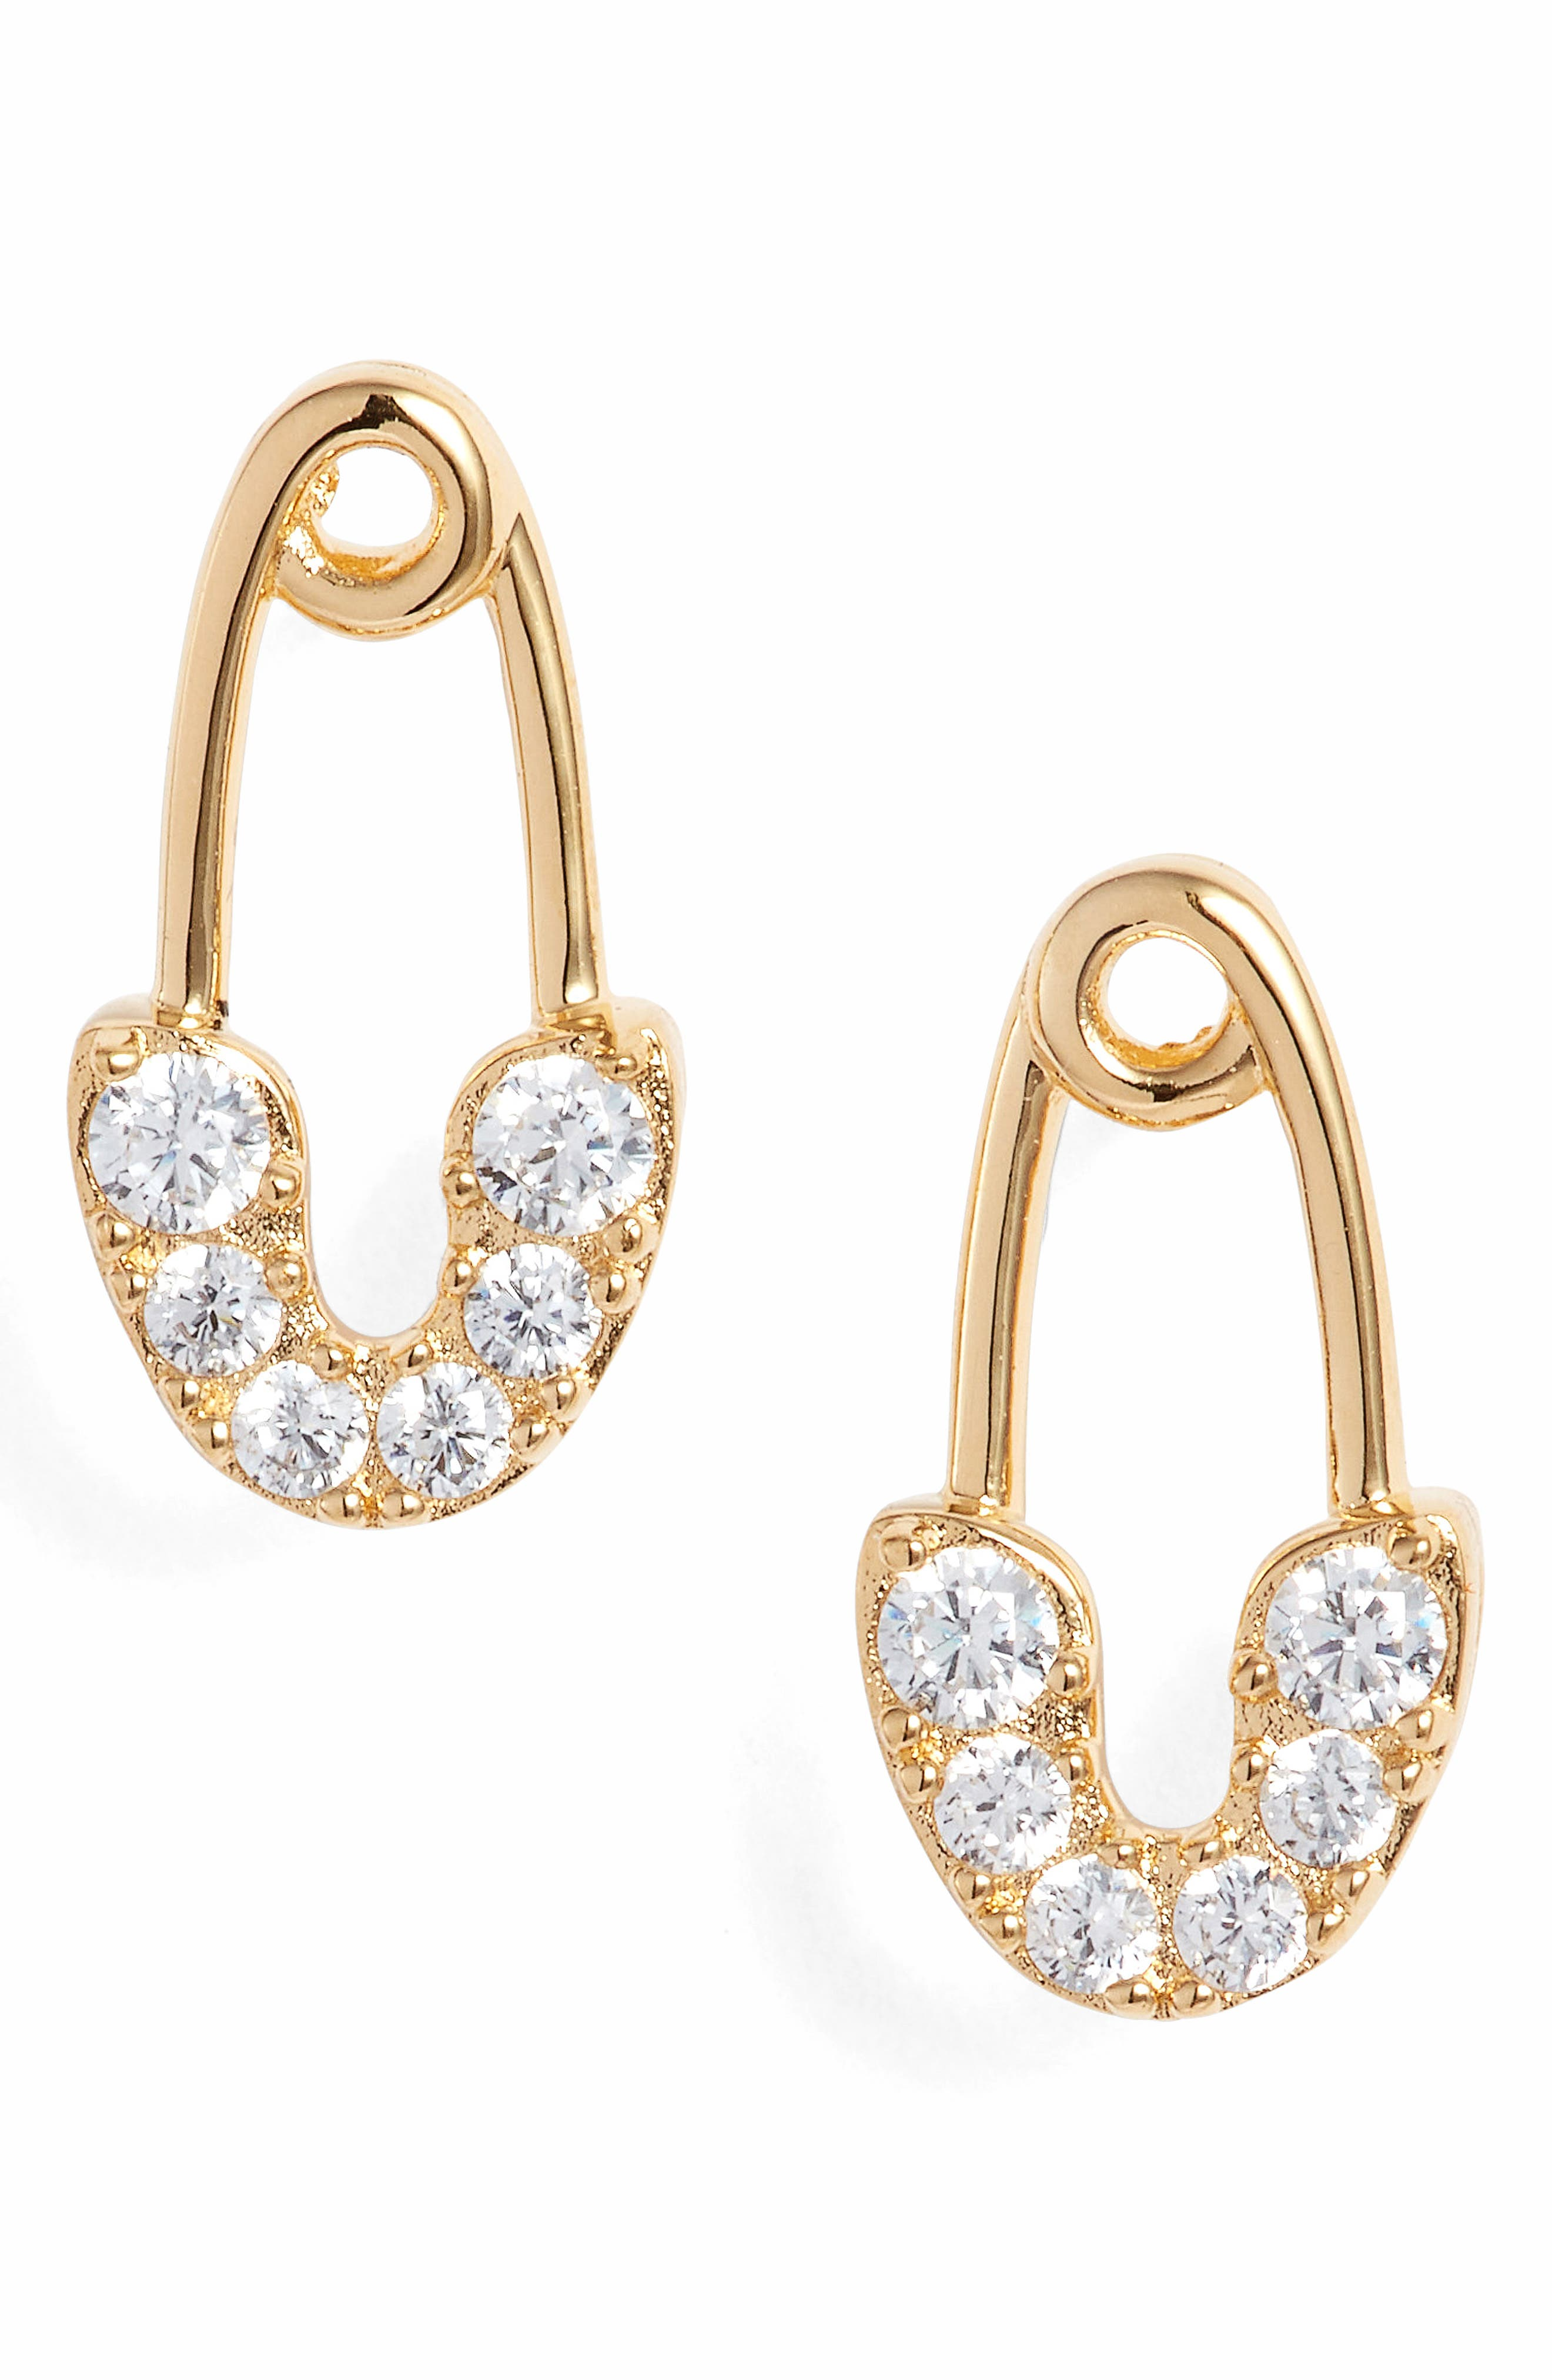 Main Image - Nadri Reminisce Safety Pin Cubic Zirconia Stud Earrings